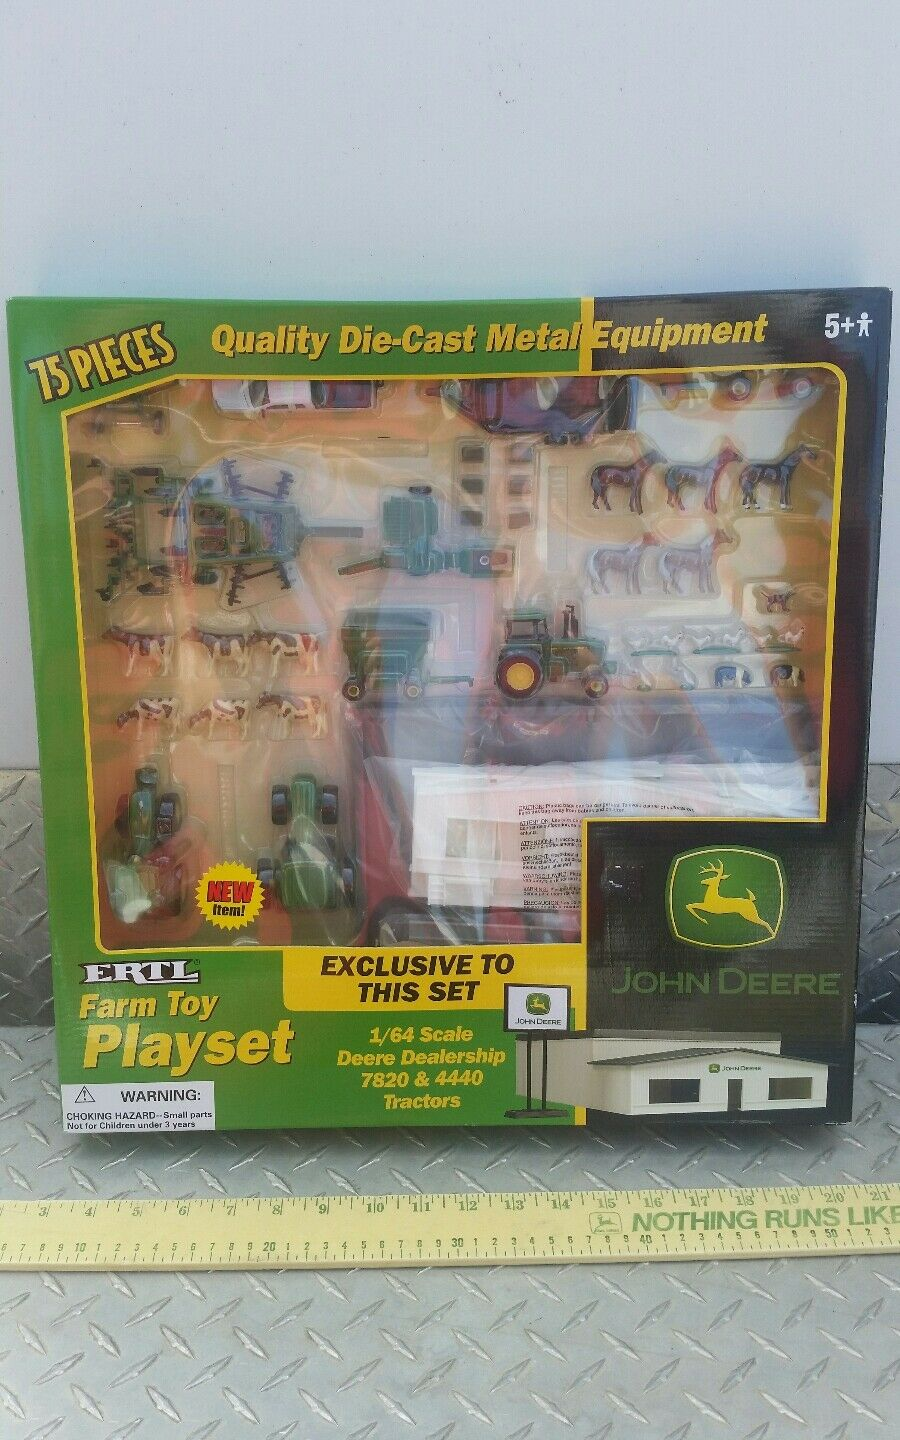 Ertl Farm Country Toy Building John deere dealership playSet s scale MIP 1 64